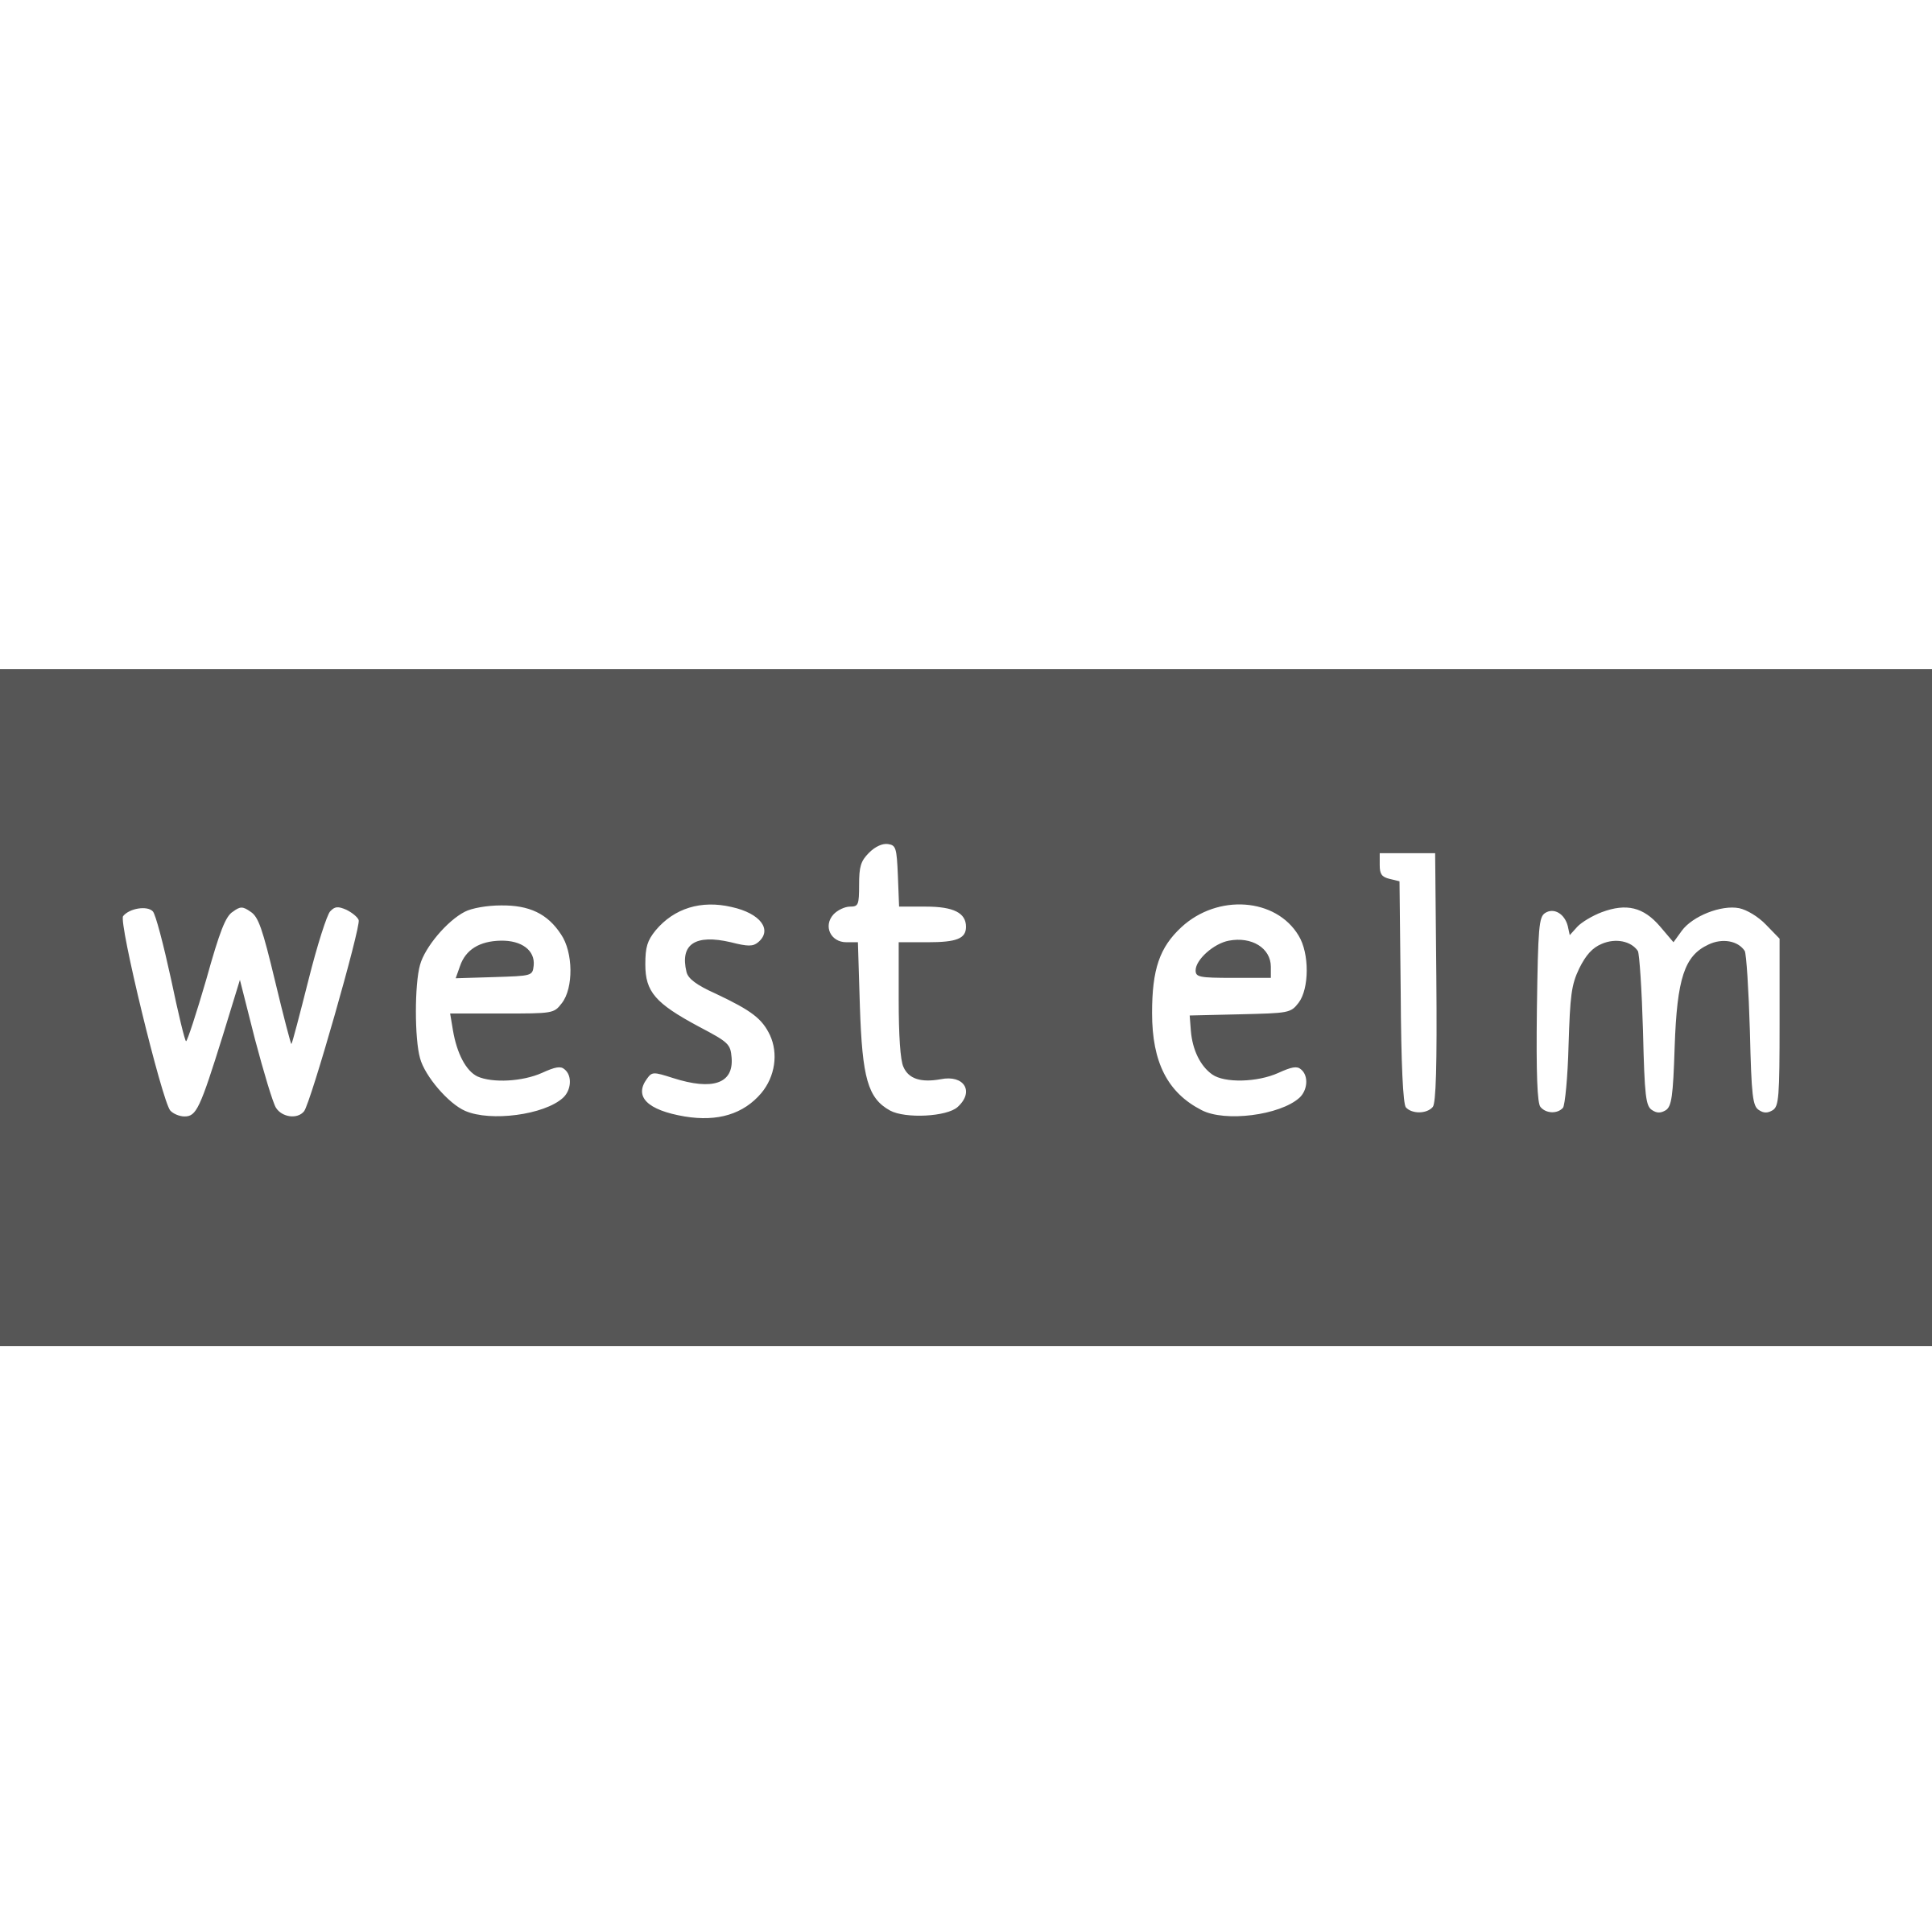 west-elm-2-logo-png-transparent.png